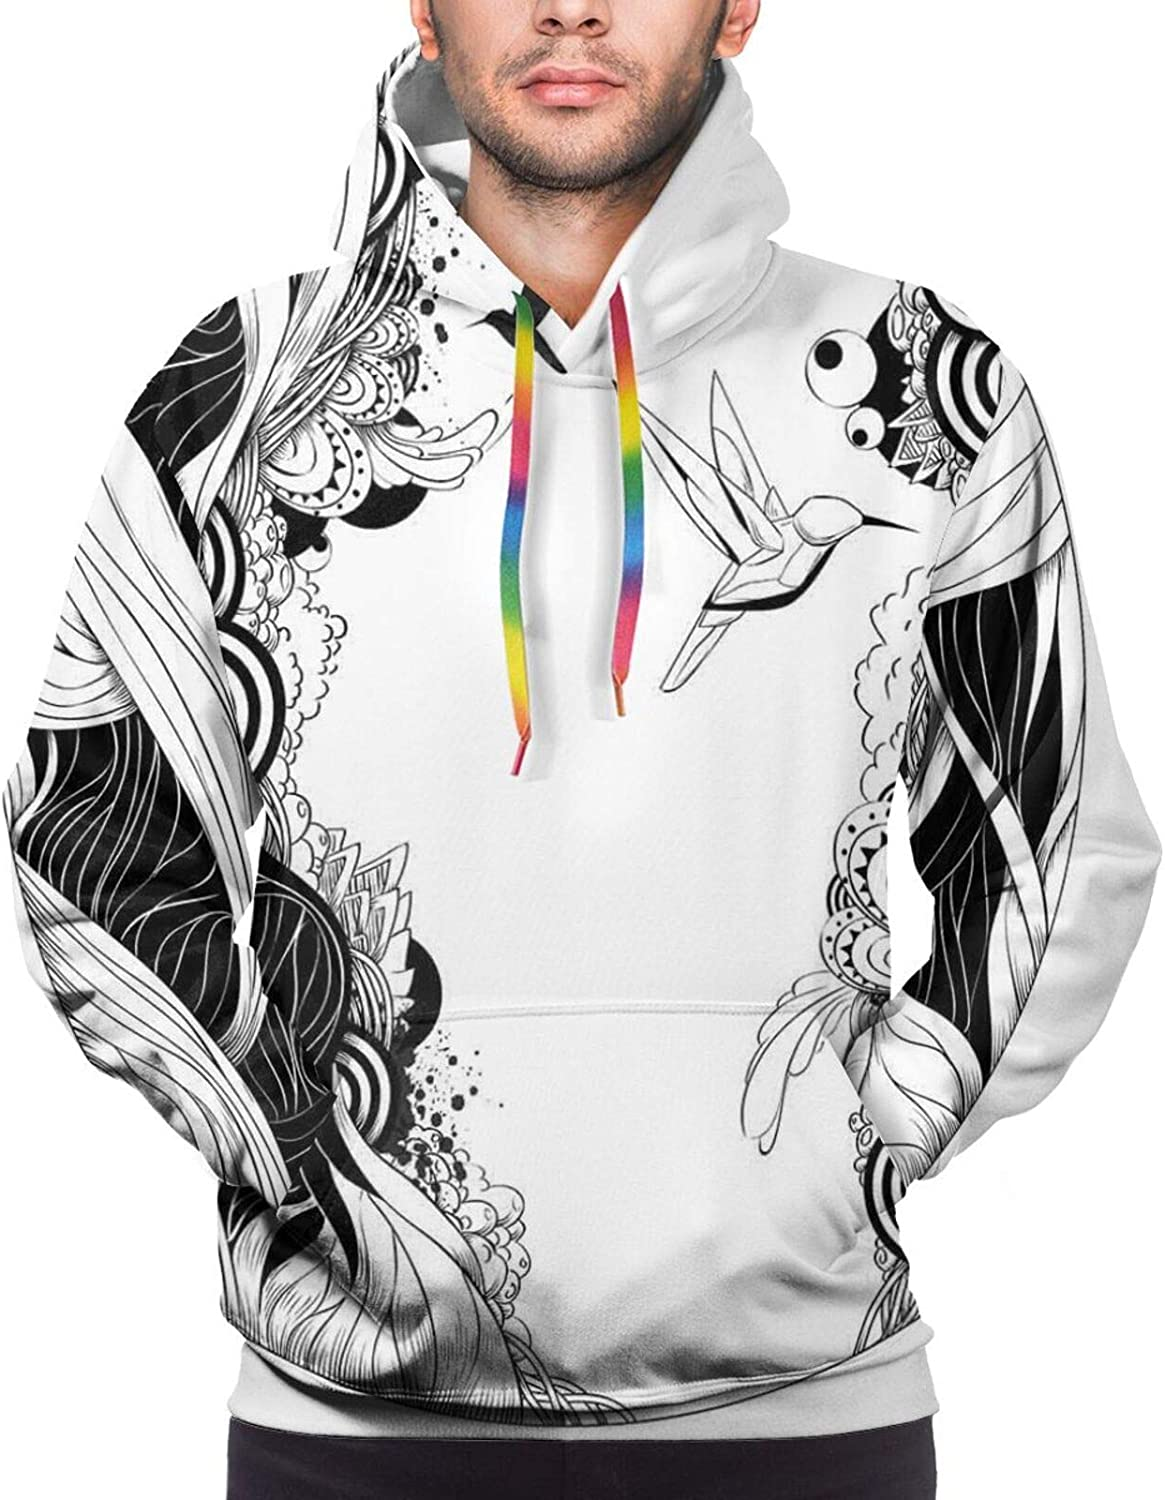 Men's Hoodies Sweatshirts,Monochrome Hipster Wild Cat with Old Motorcycle Equipment Vintage Style Pattern